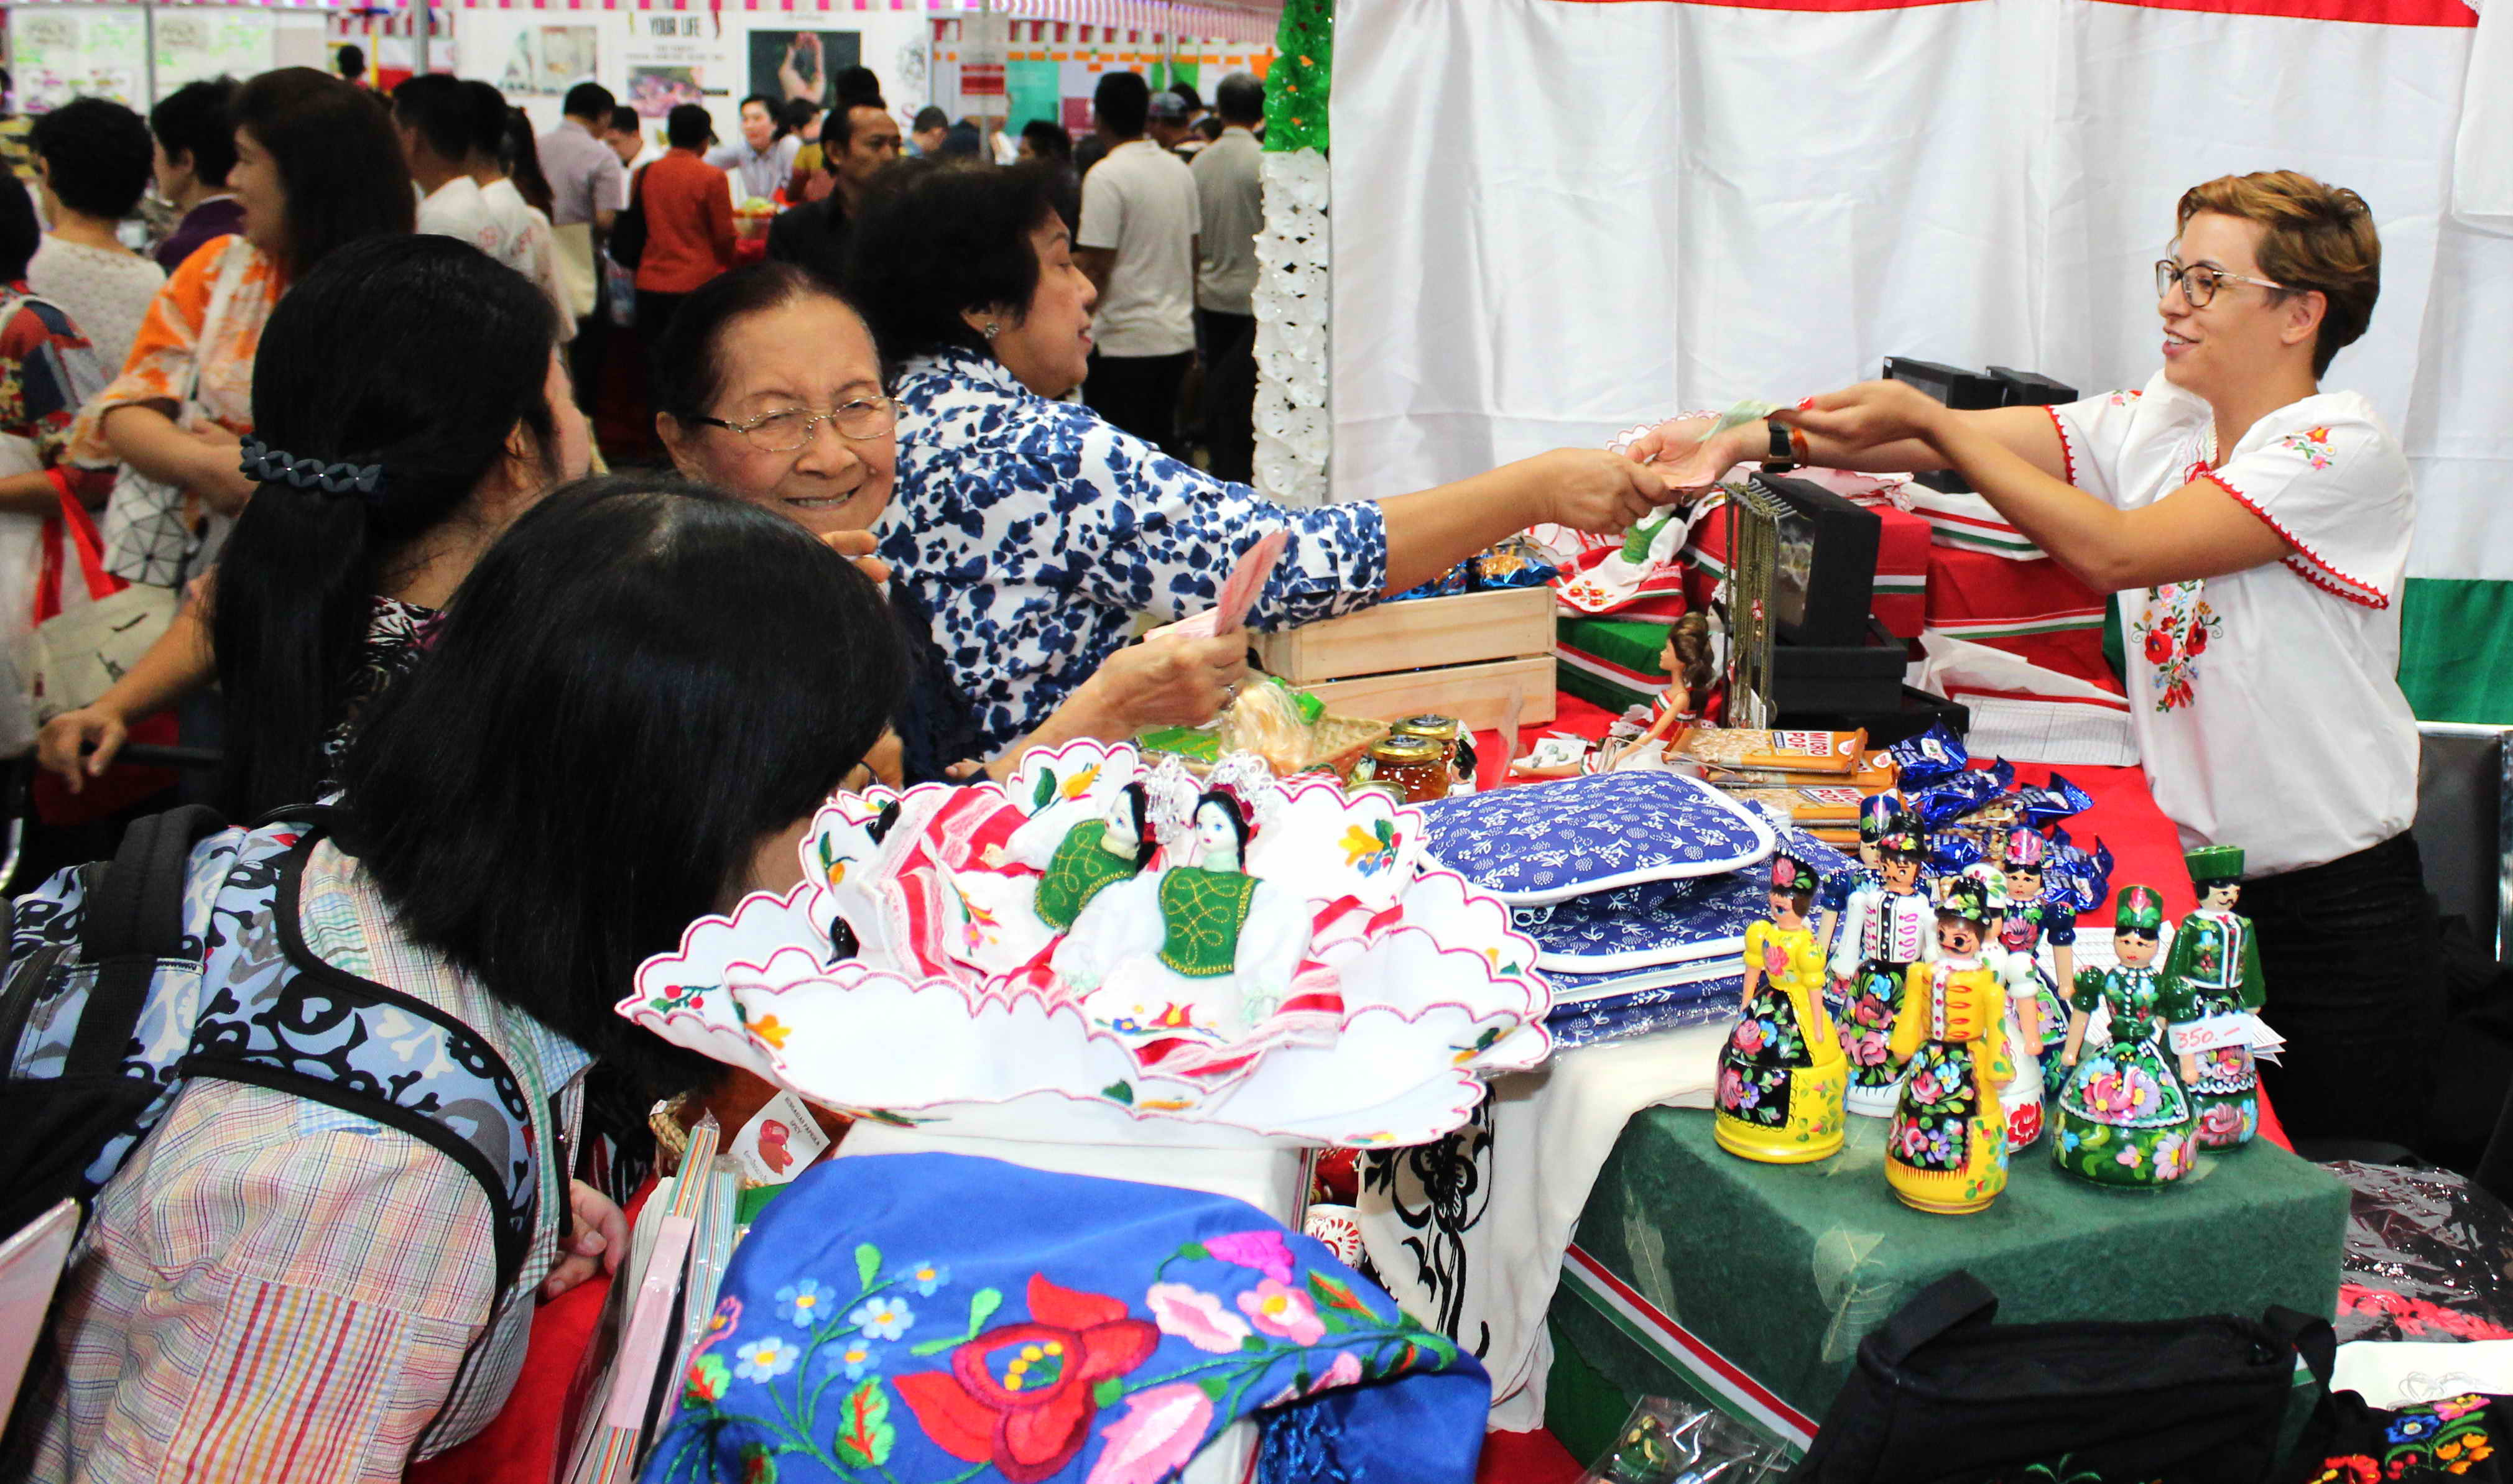 Red Cross Diplomatic Bazaar - Siam Paragon 2018 02 24-25 - 8172